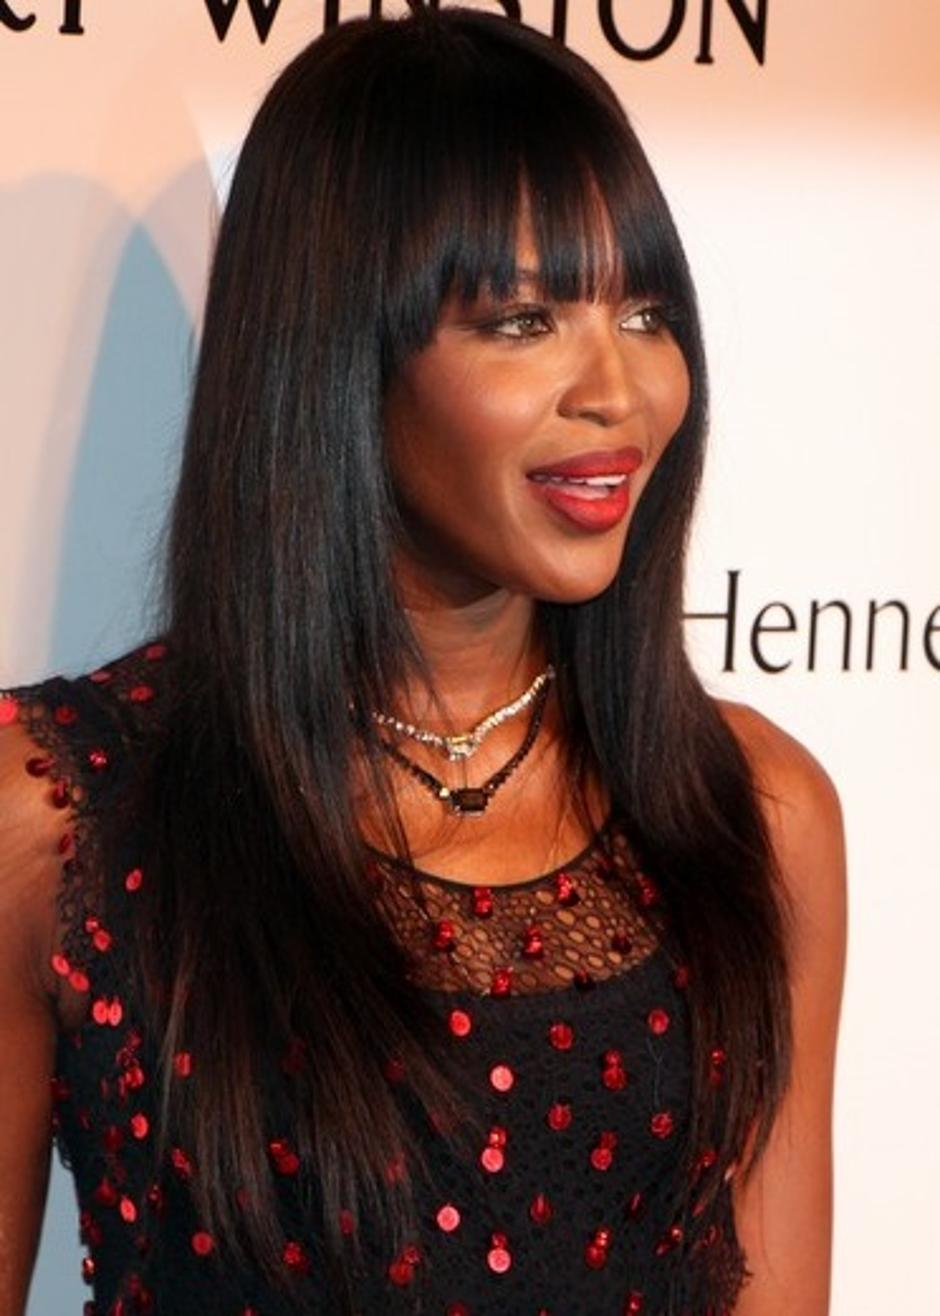 Bivši supermodel Naomi Campbell | Author: Wikimedia Commons